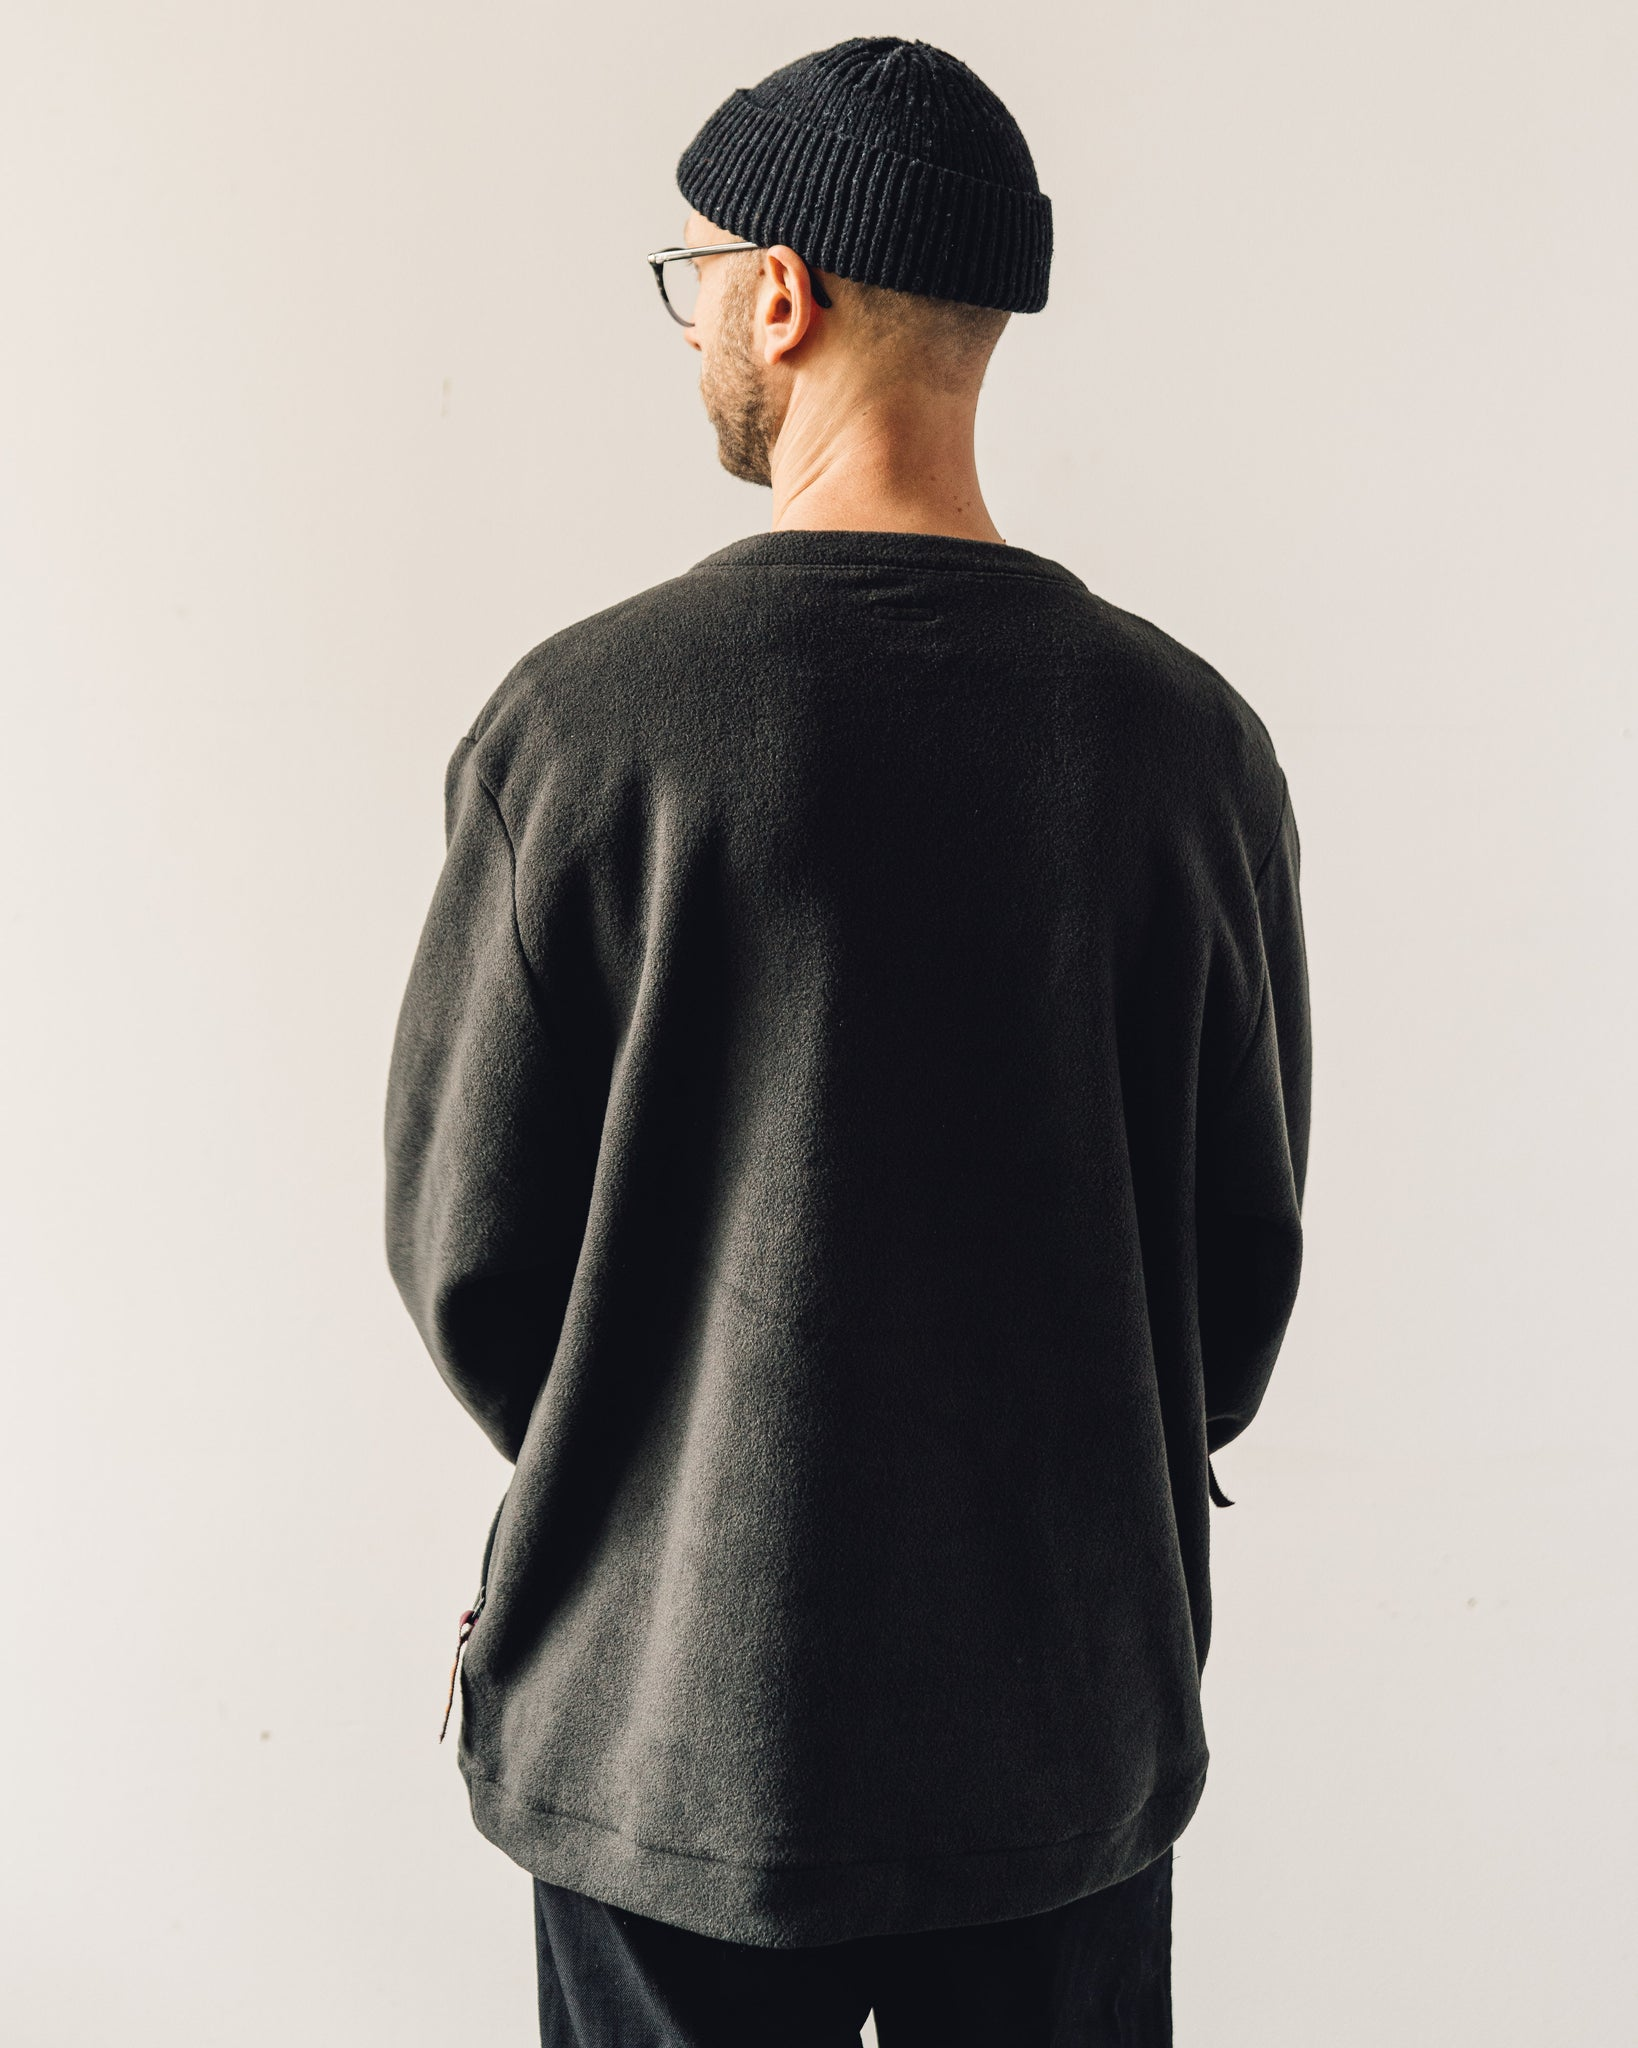 Kapital Reverse Fleece Big Crew Sweatshirt, Black